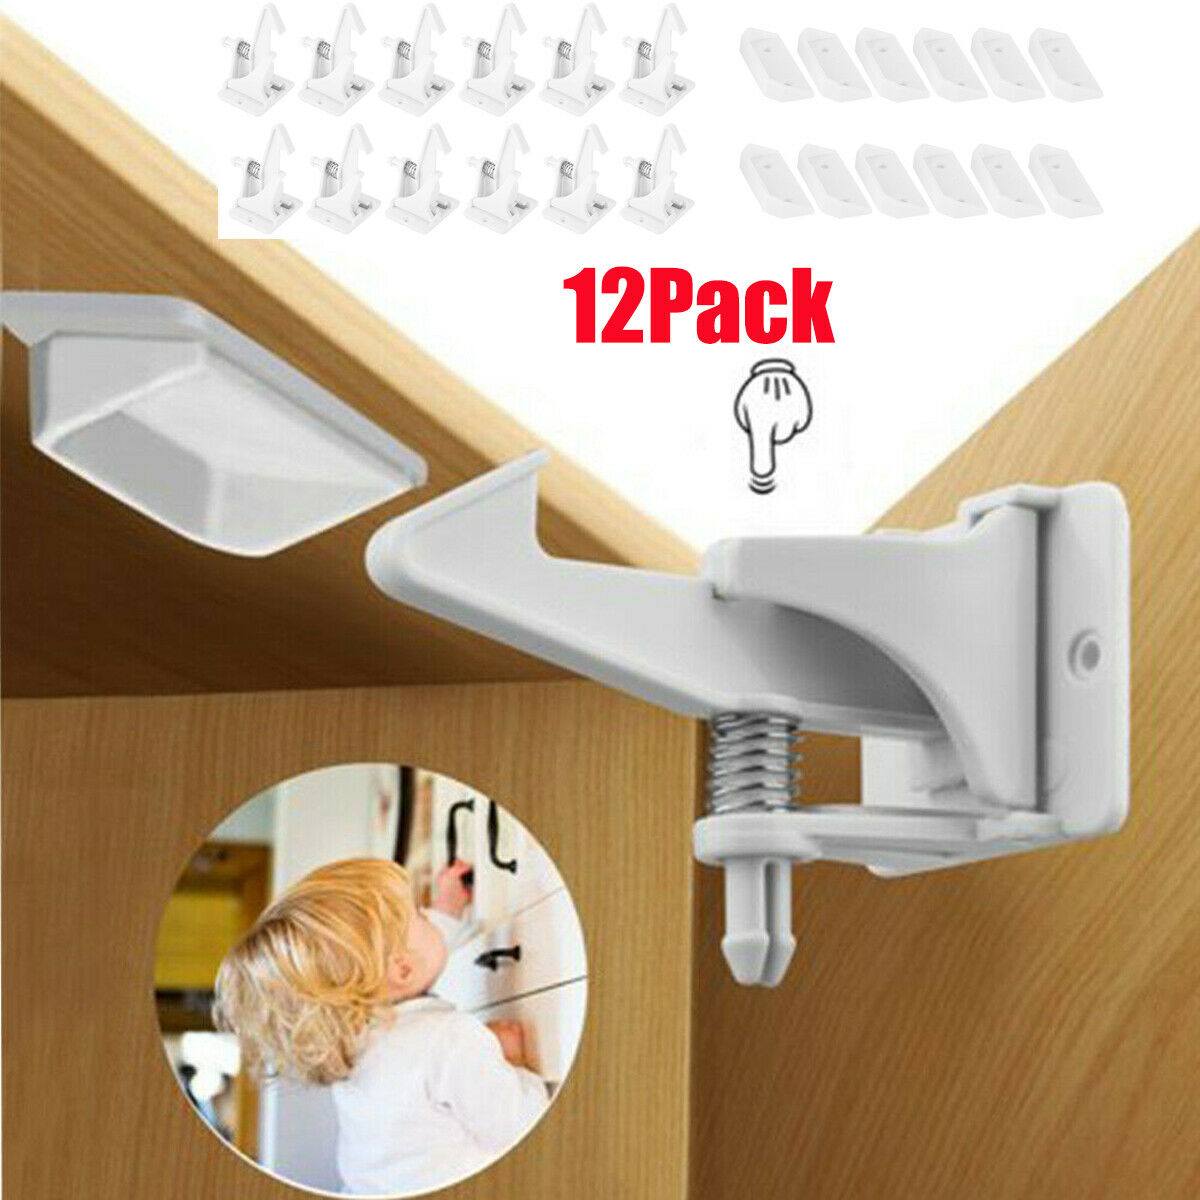 Homemaxs 12pcs Magnetic Cabinet Drawer Cupboard Locks For Baby Safety Child For Sale Online Ebay